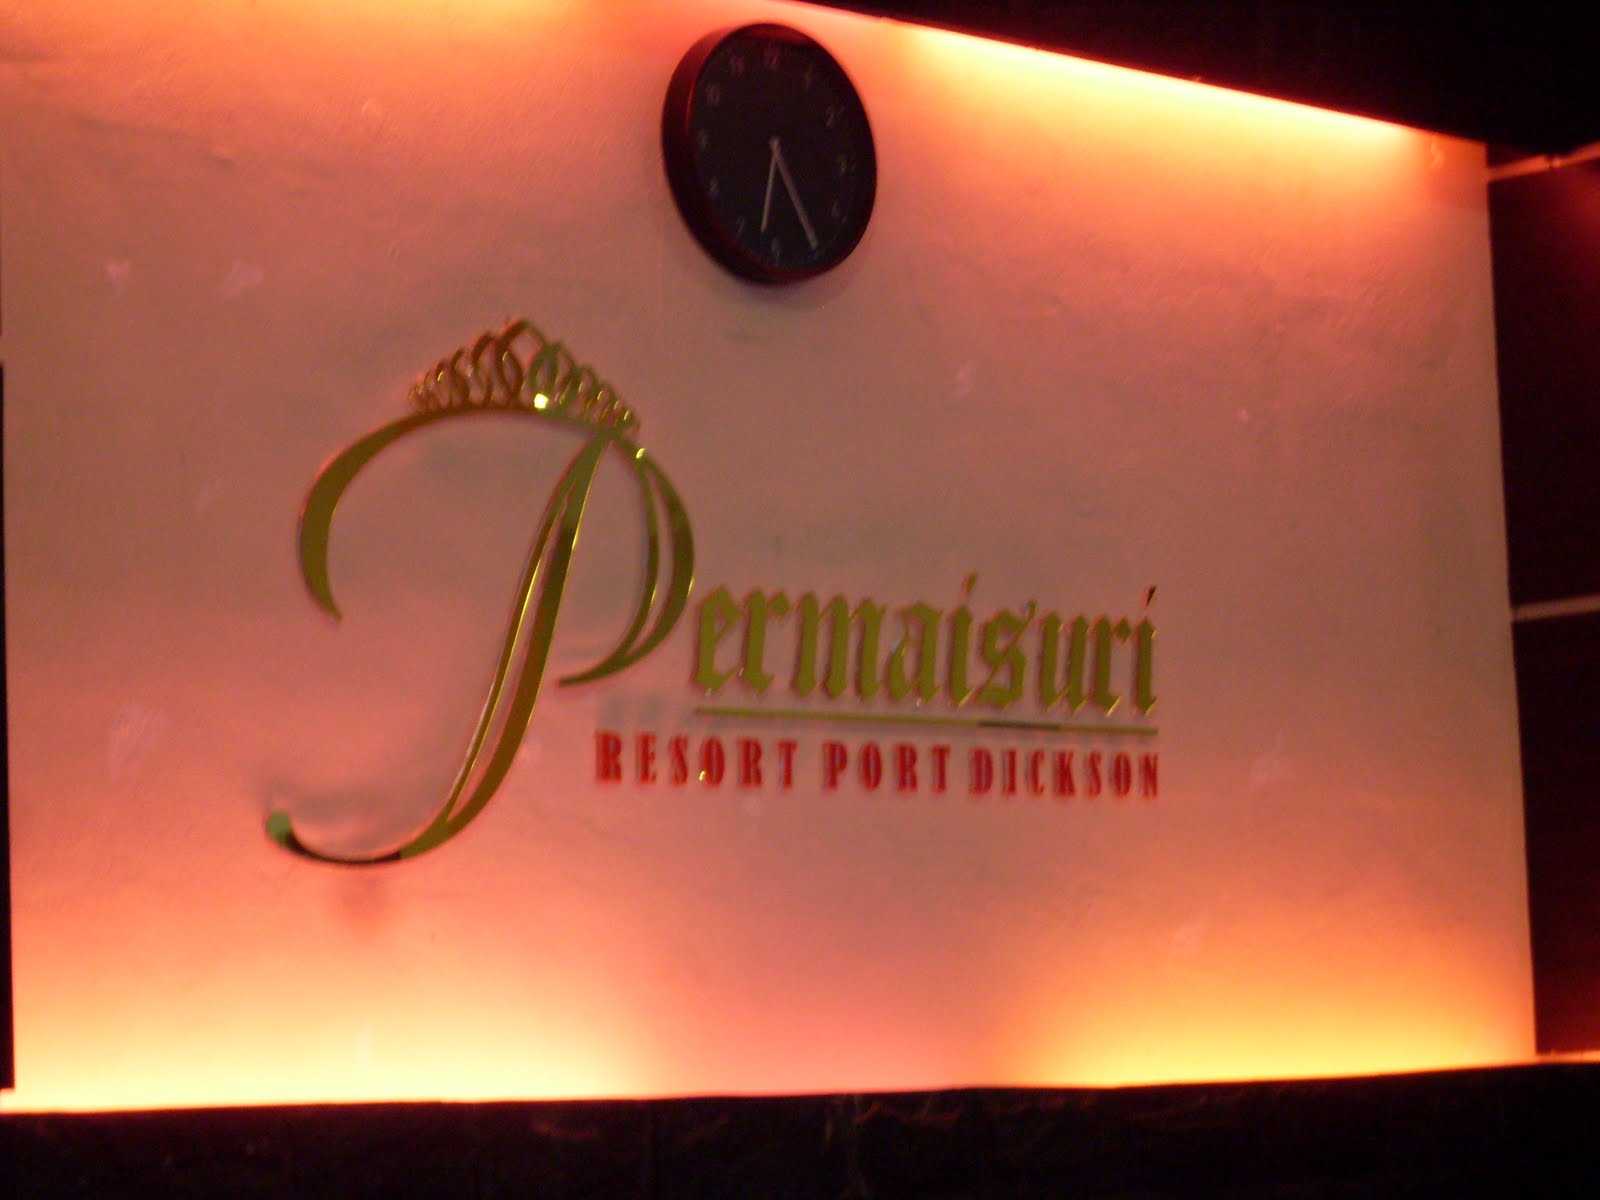 Permaisuri+resort+port+dickson+map